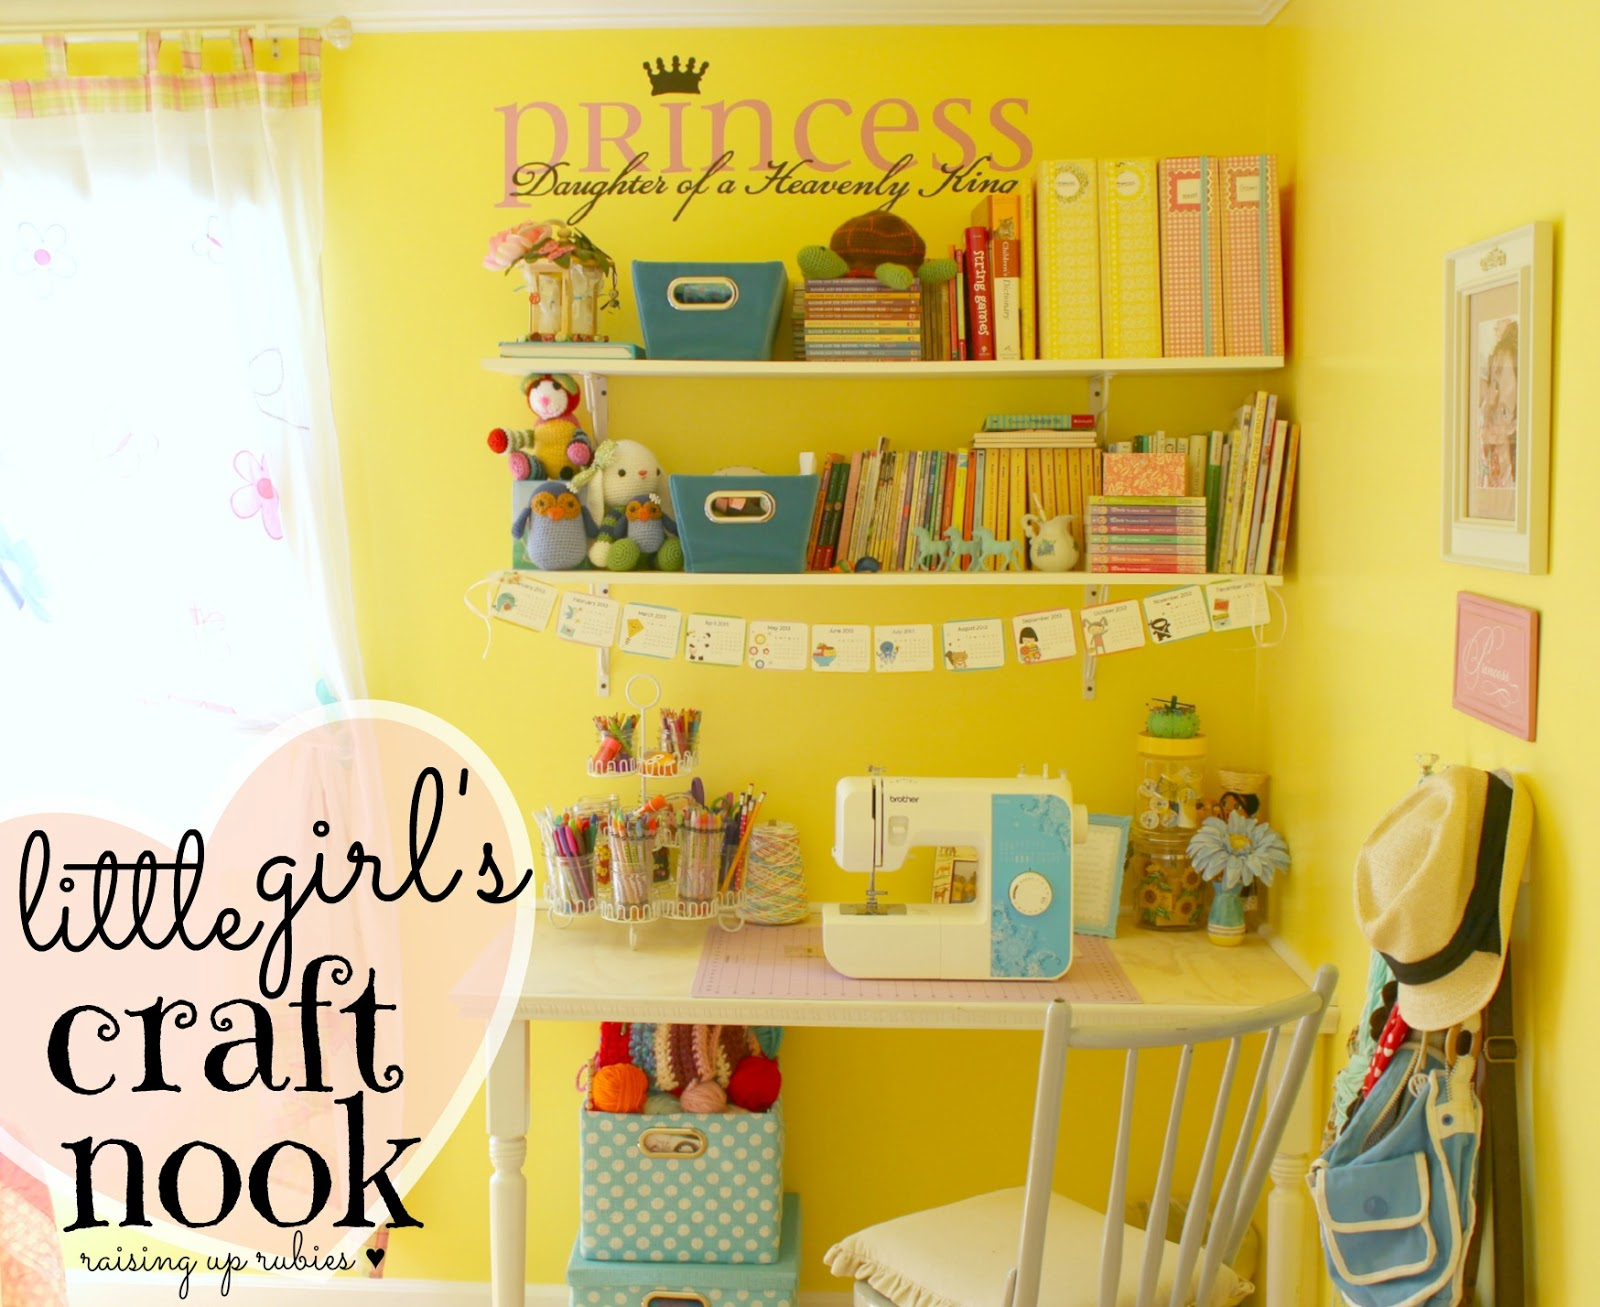 Raising Up Rubies- Blog: a little girl\'s craft nook ... ♥